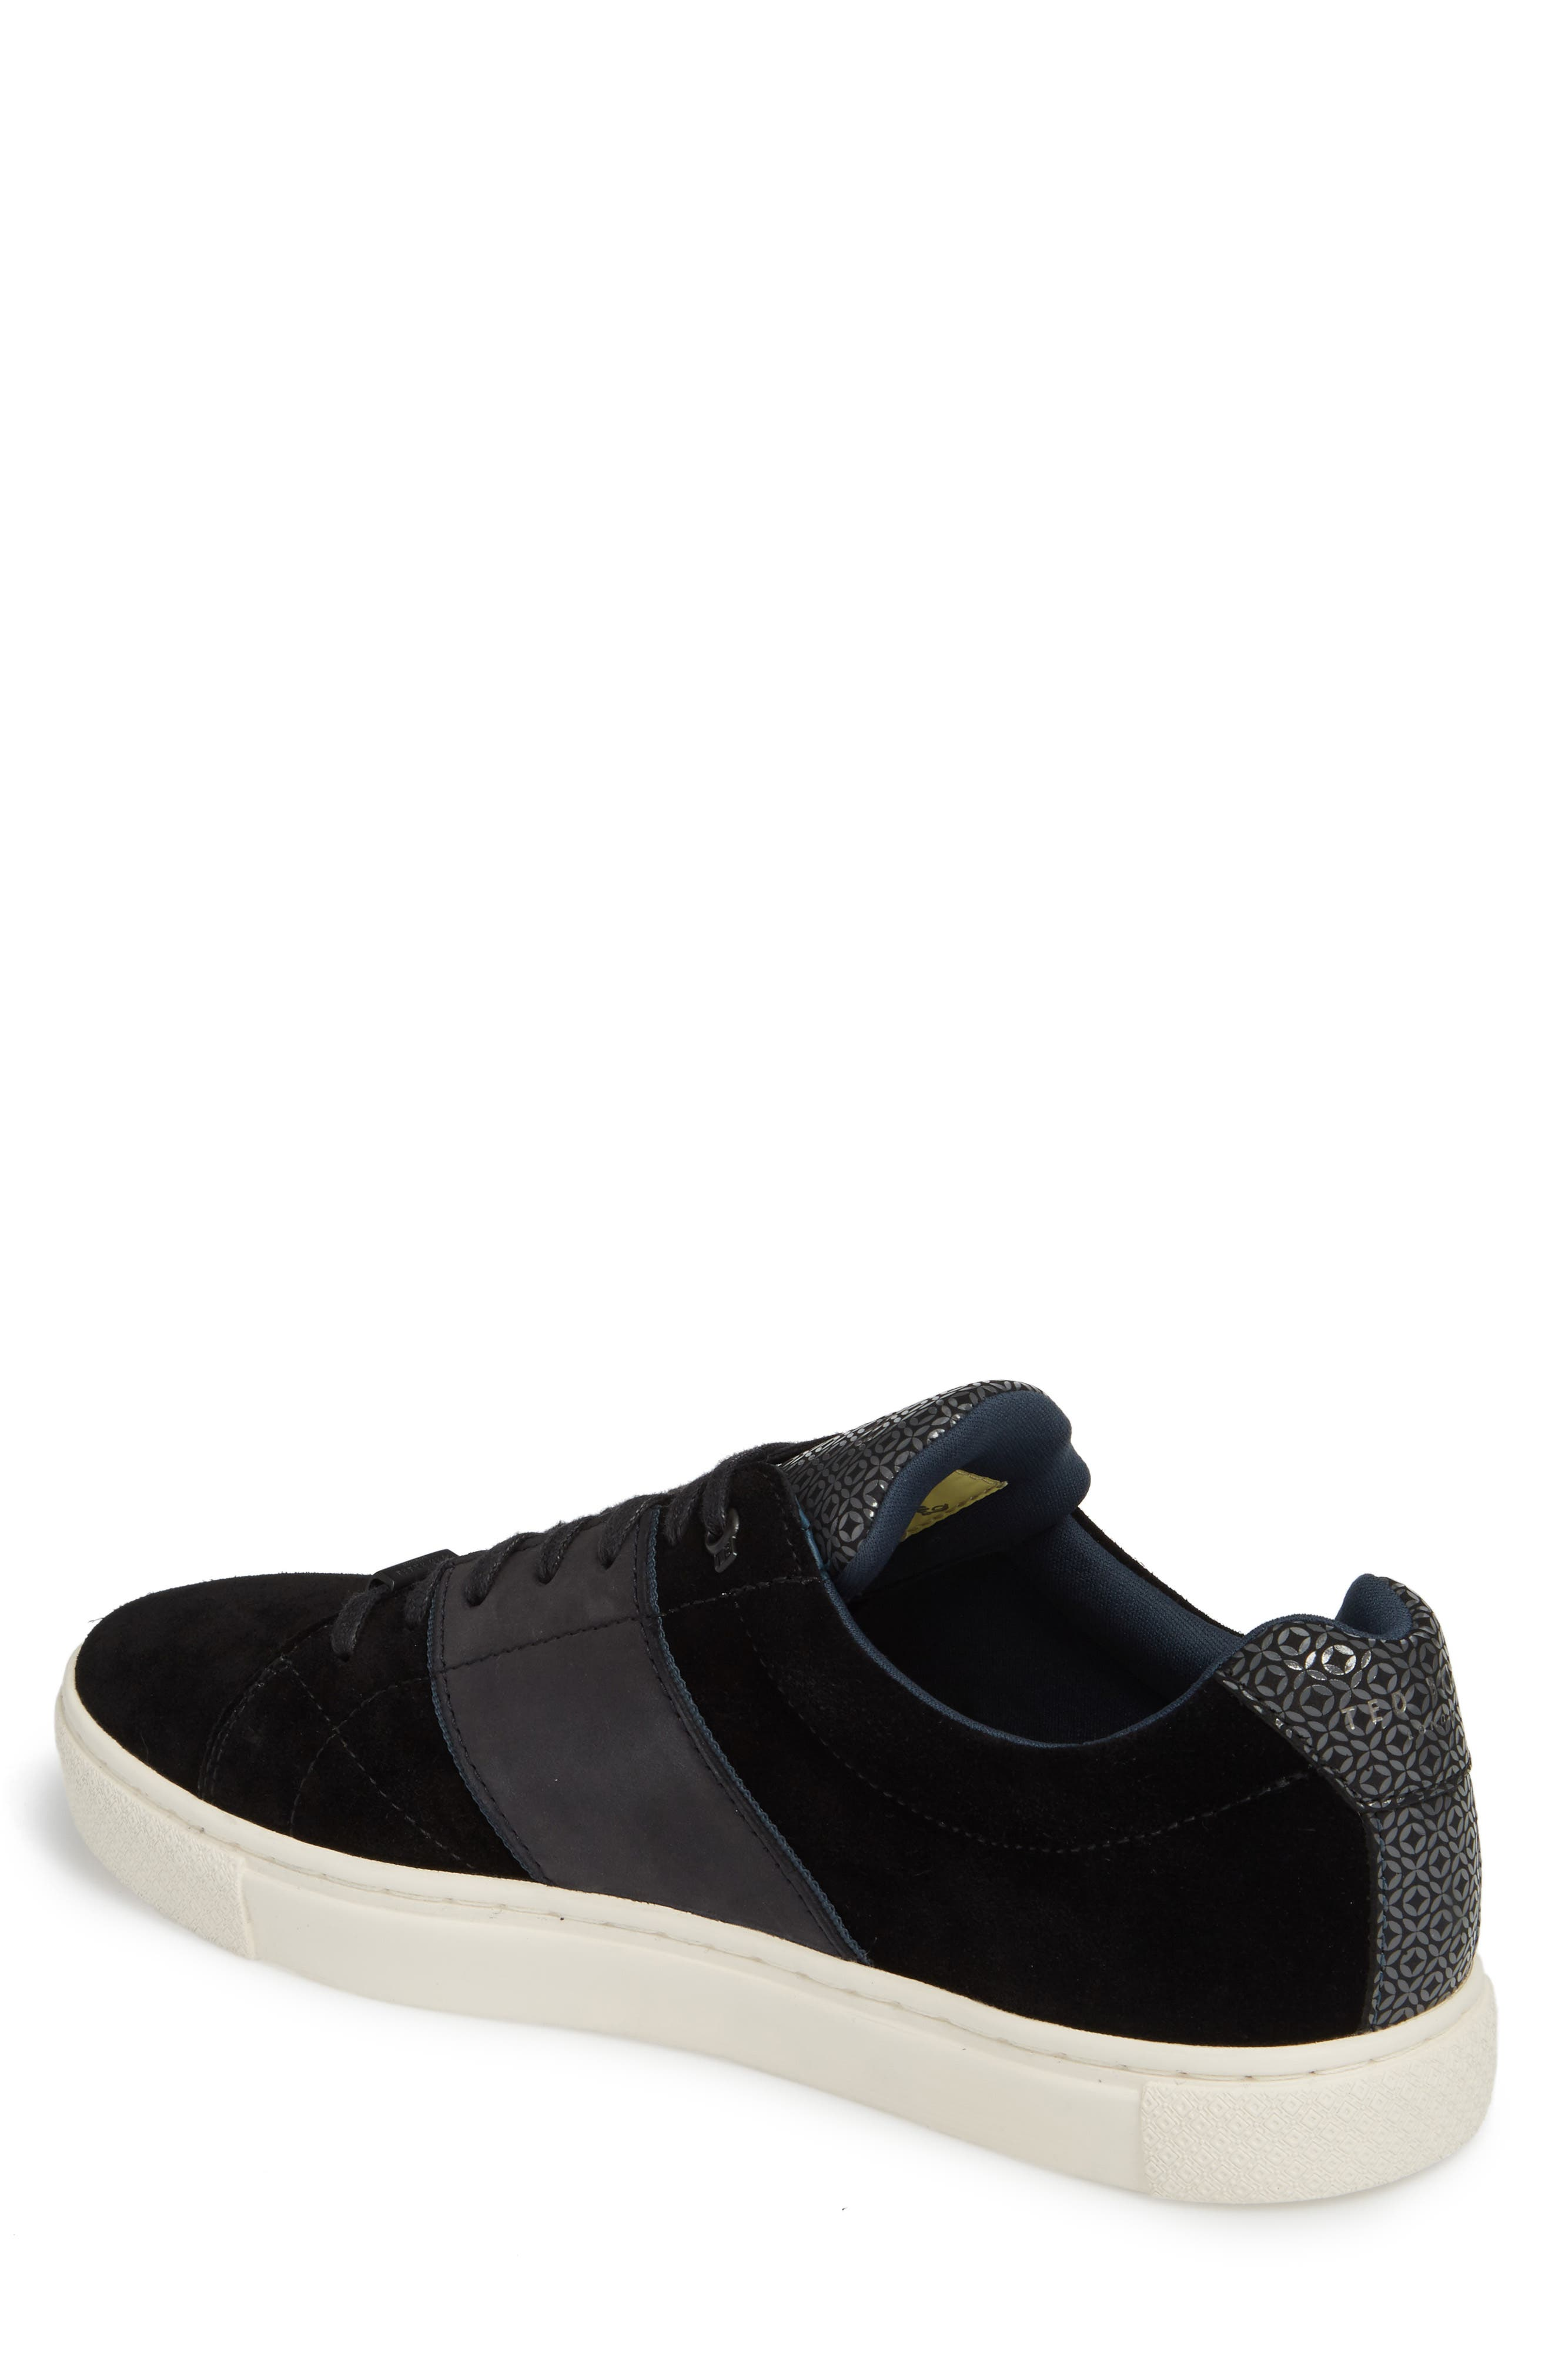 Dannez Low Top Sneaker,                             Alternate thumbnail 2, color,                             001